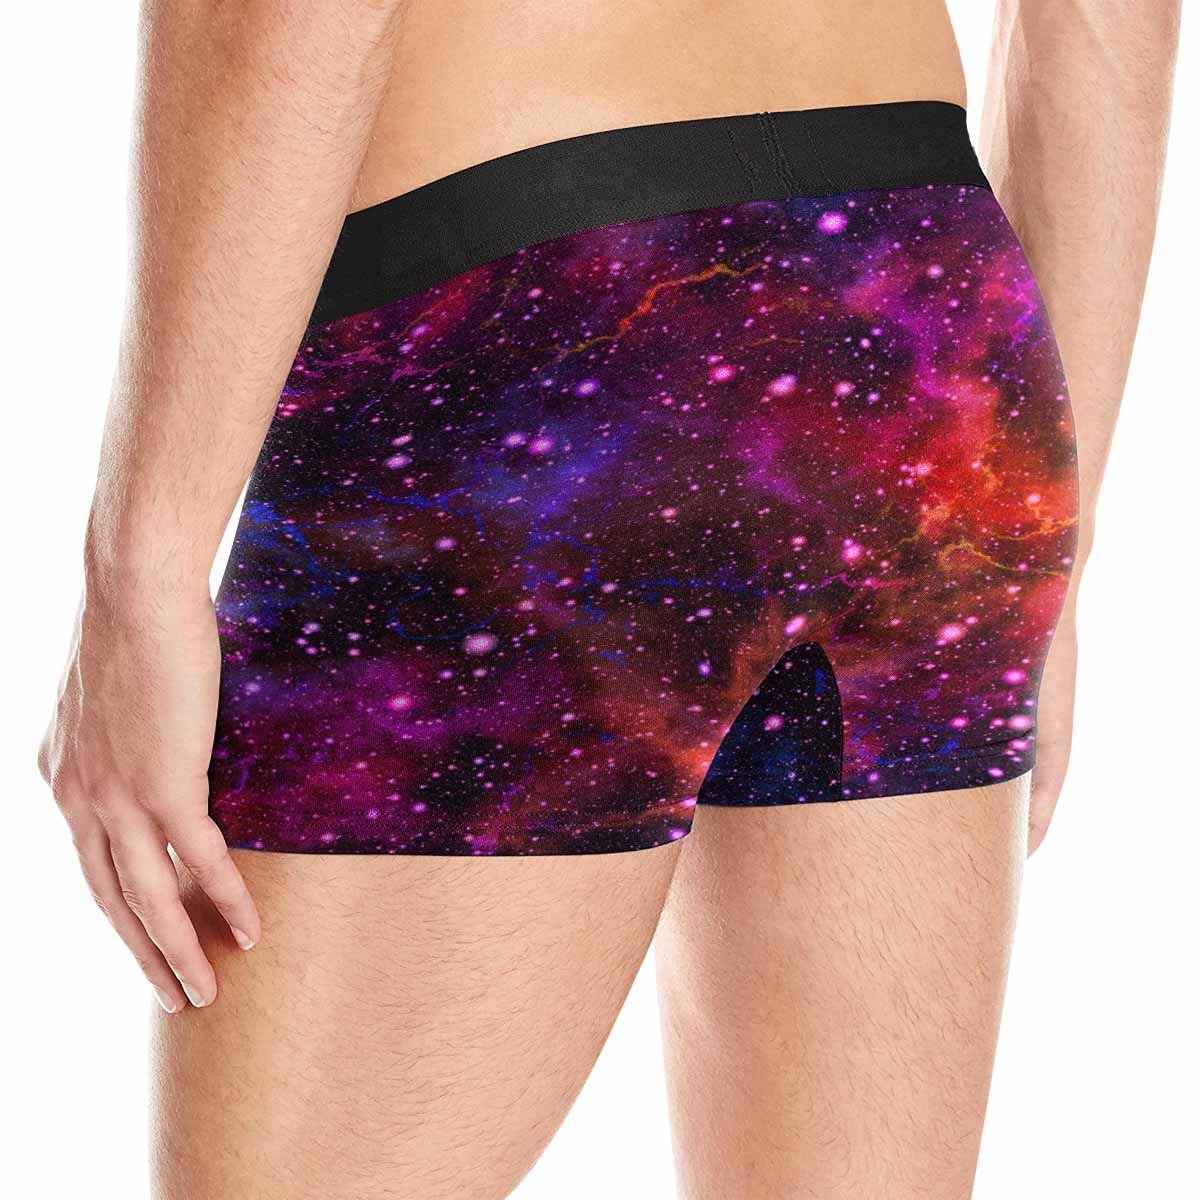 INTERESTPRINT Mens All-Over Print Boxer Briefs Abstract Colorful Universe Nebula Night Starry Sky XS-3XL